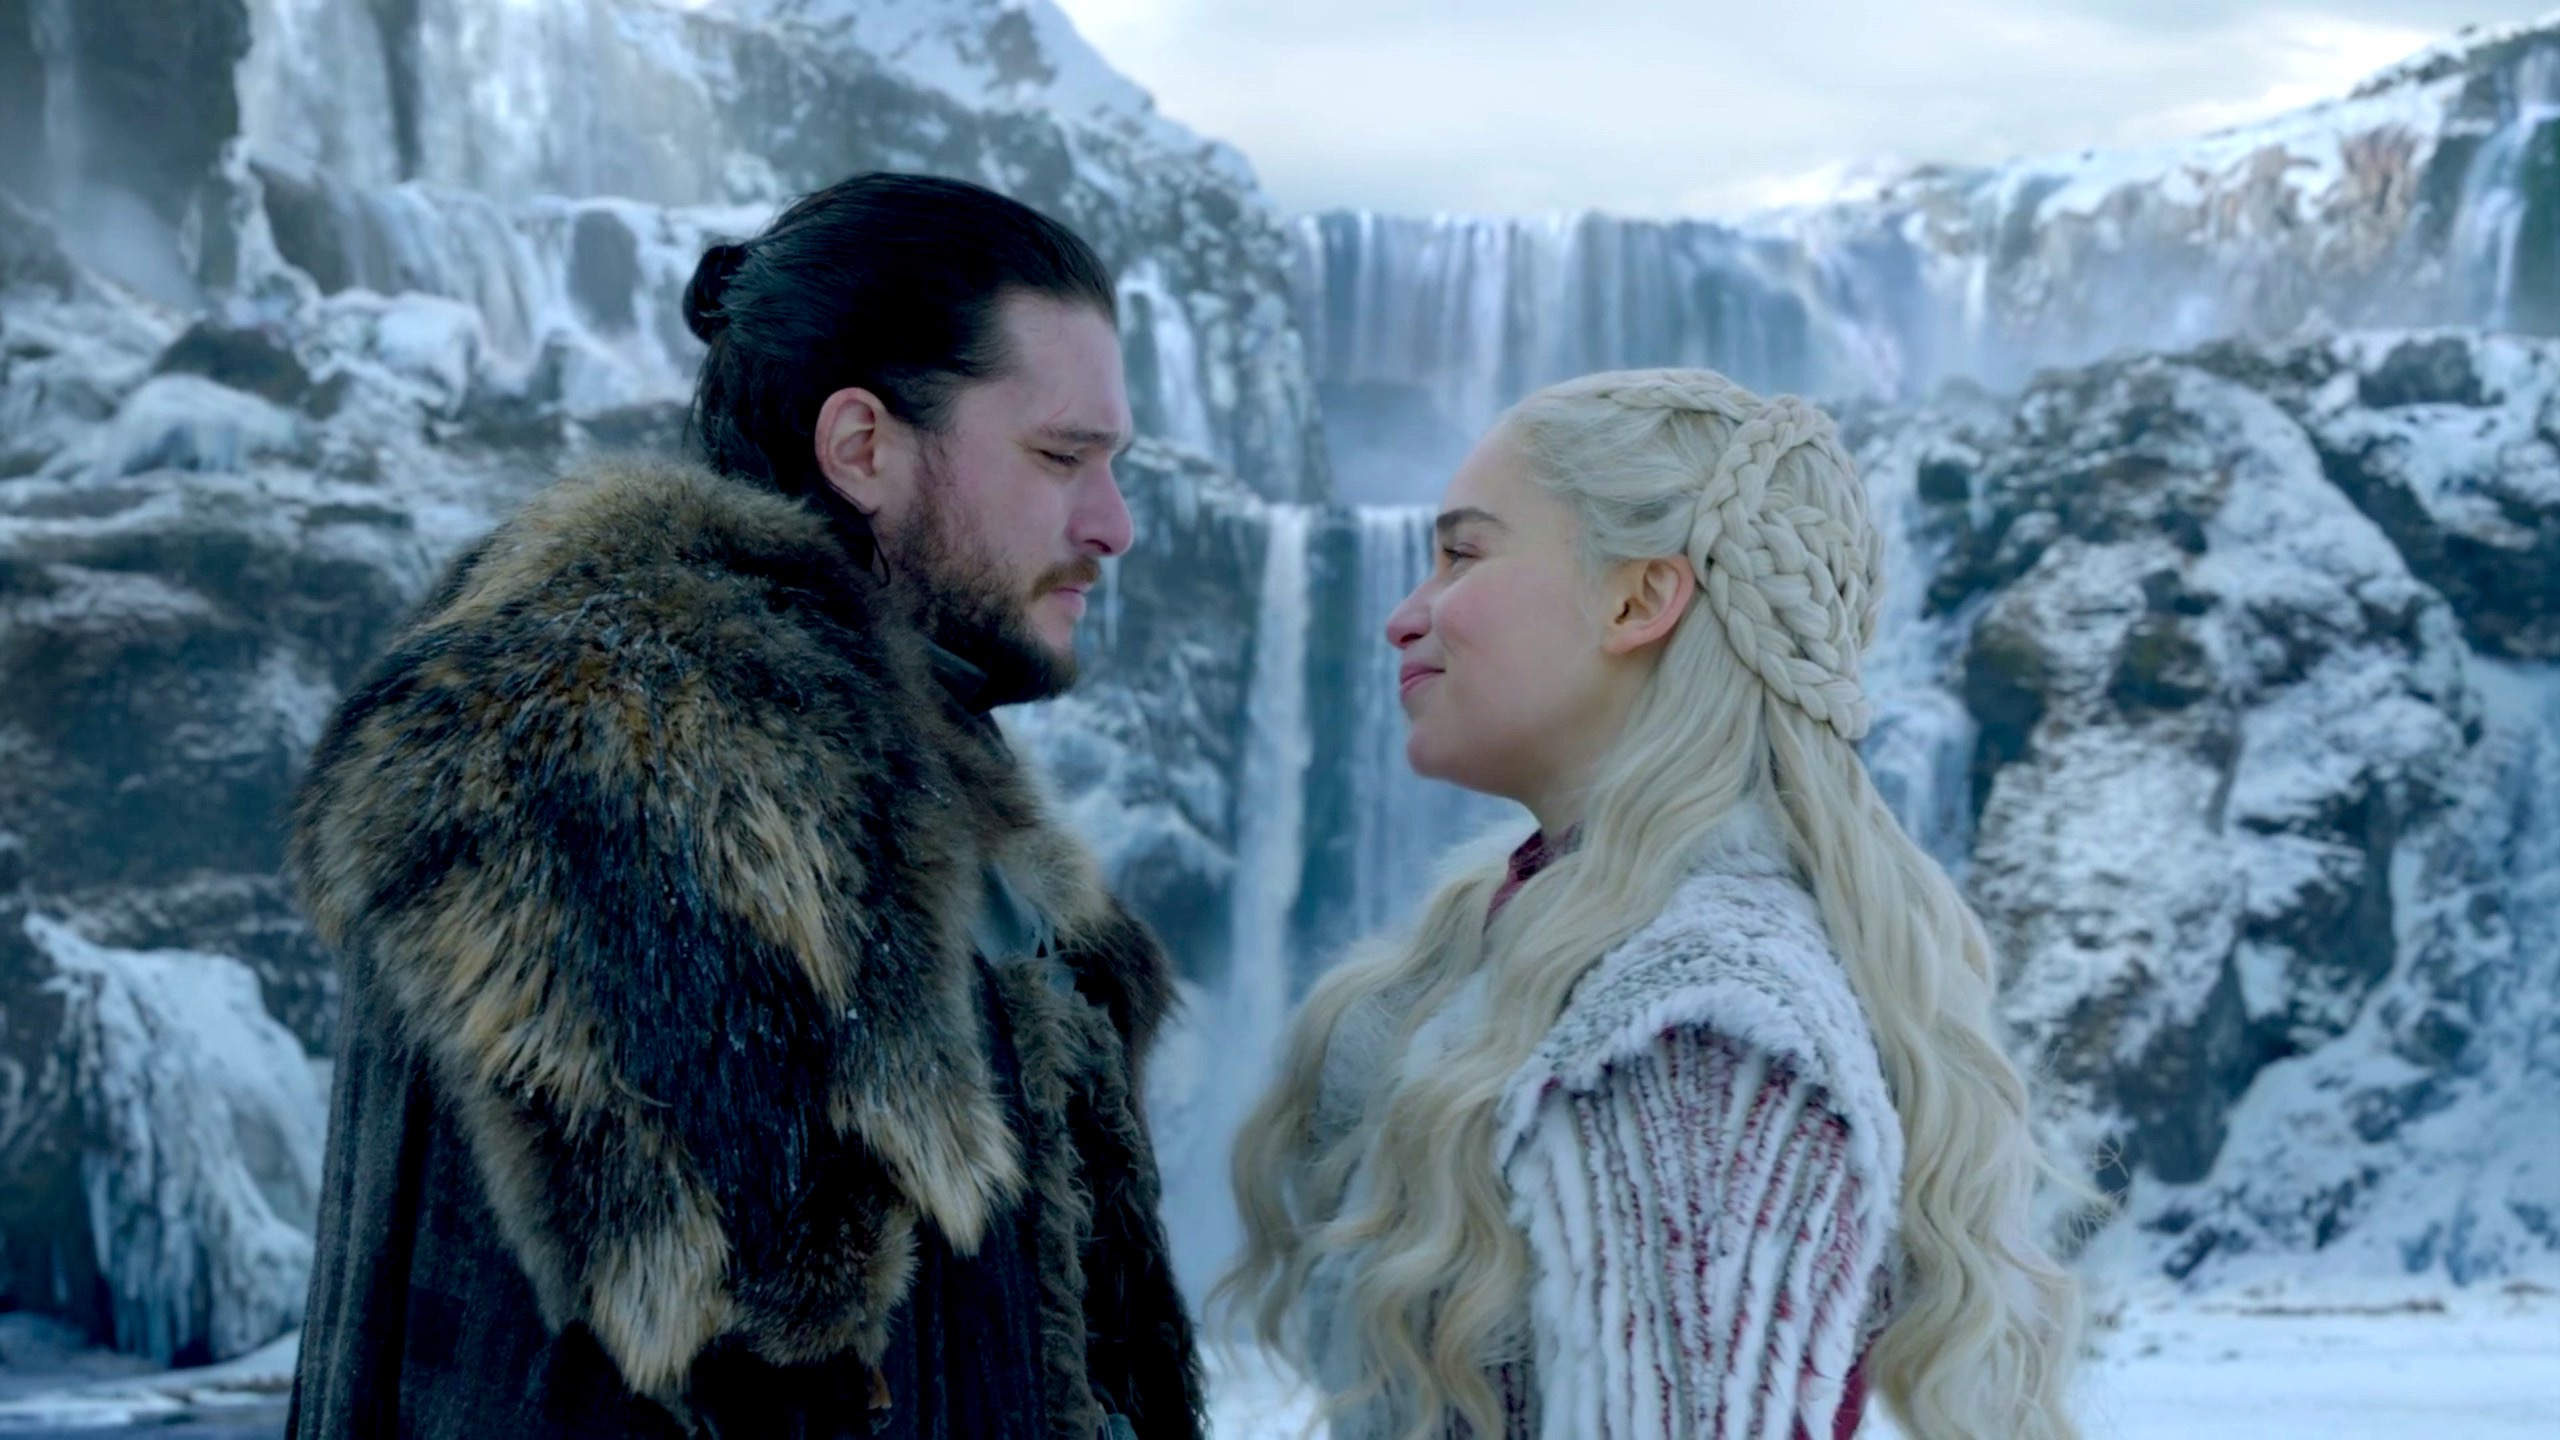 Jon Snow and Daenerys Targaryen in Game of Thrones 8x01 - Winterfell